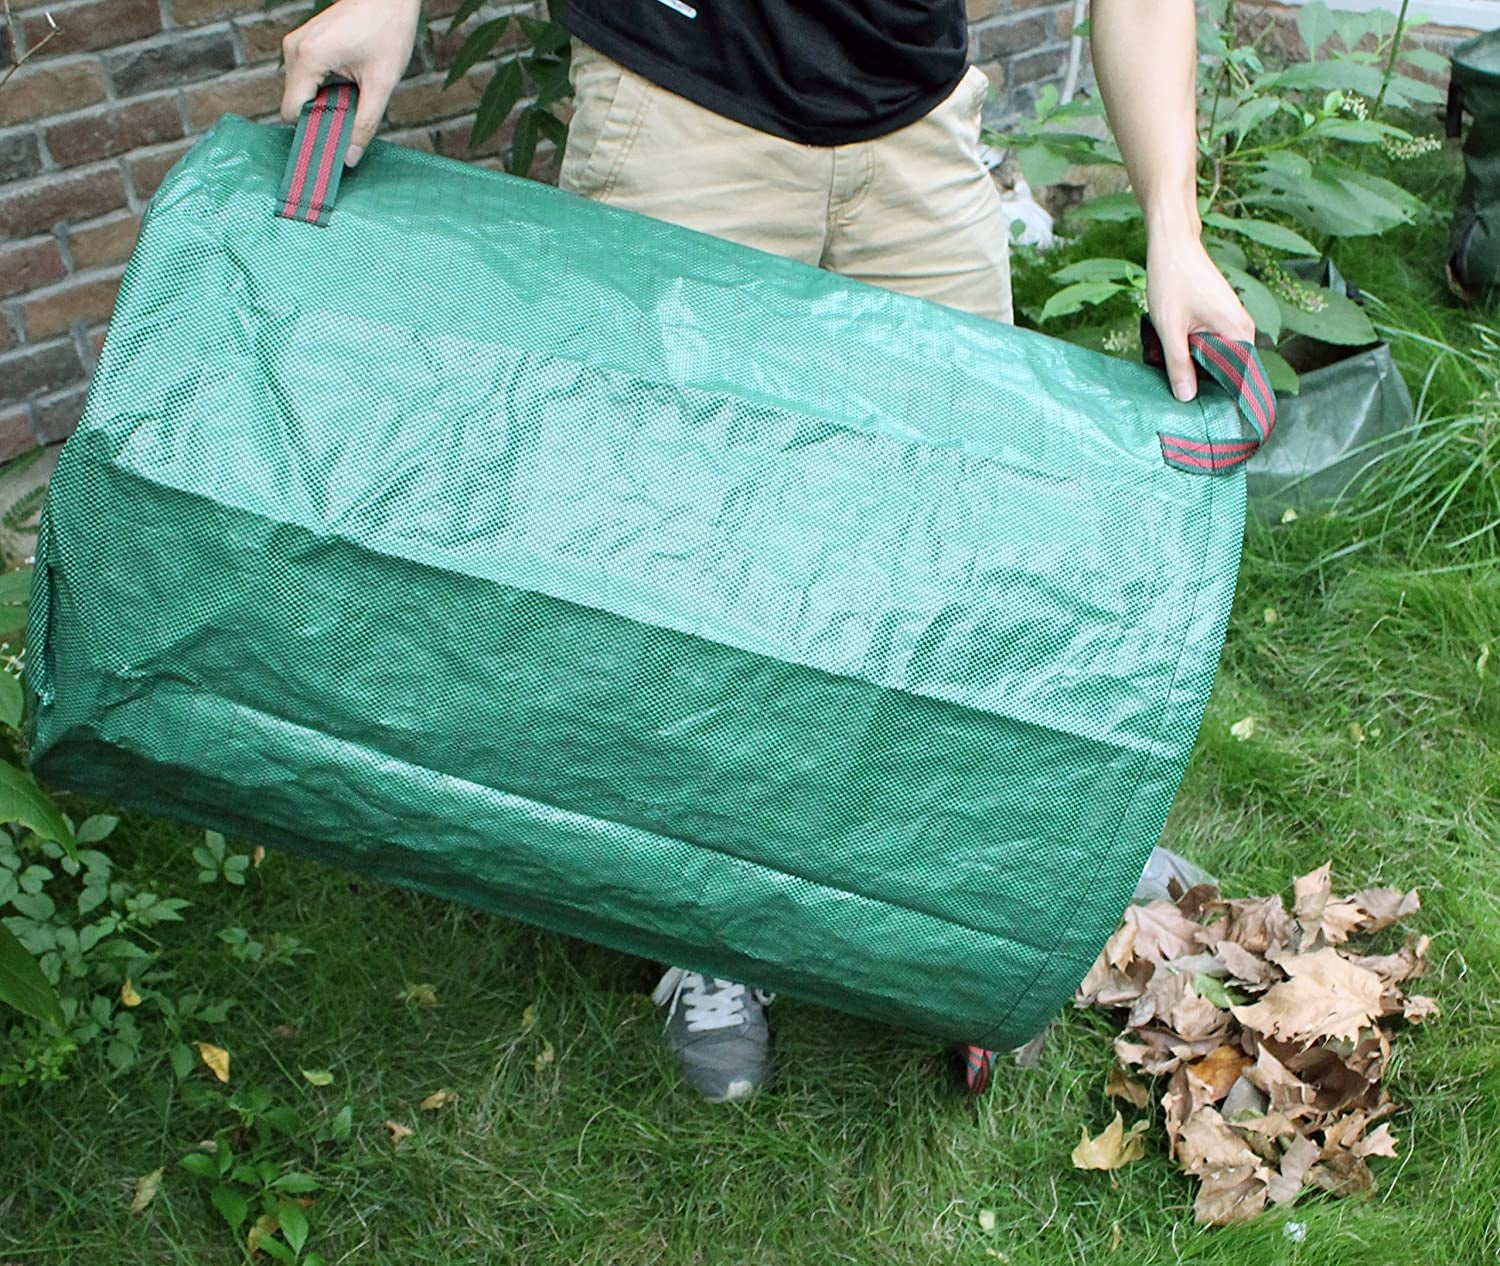 hands holding the green cylindrical bag as a scoop for dead leaves